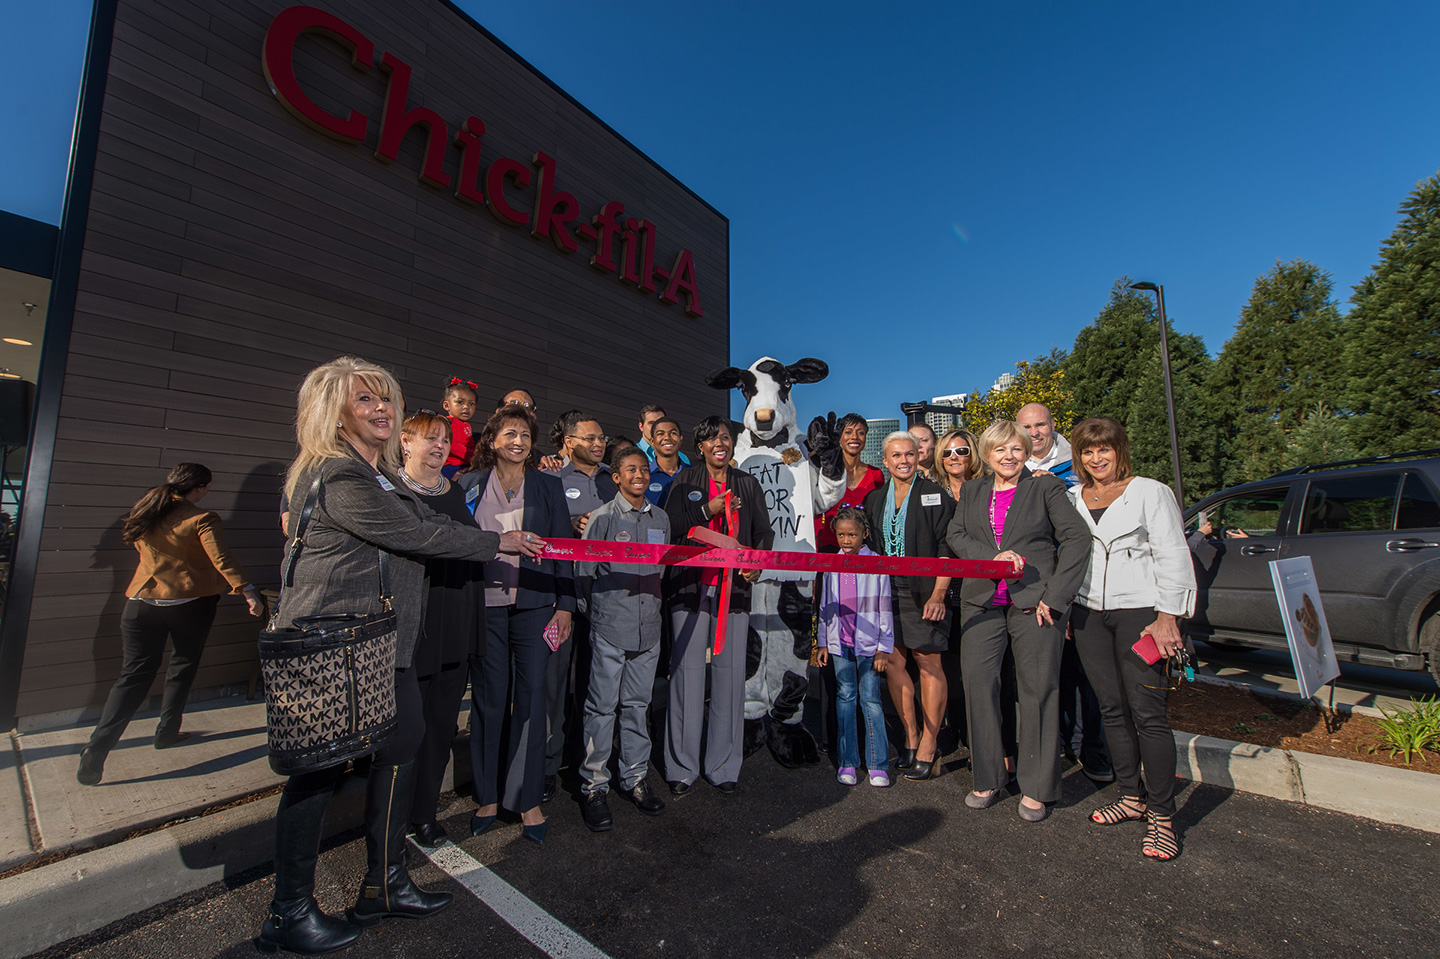 Bellevue restaurant ribbon cutting